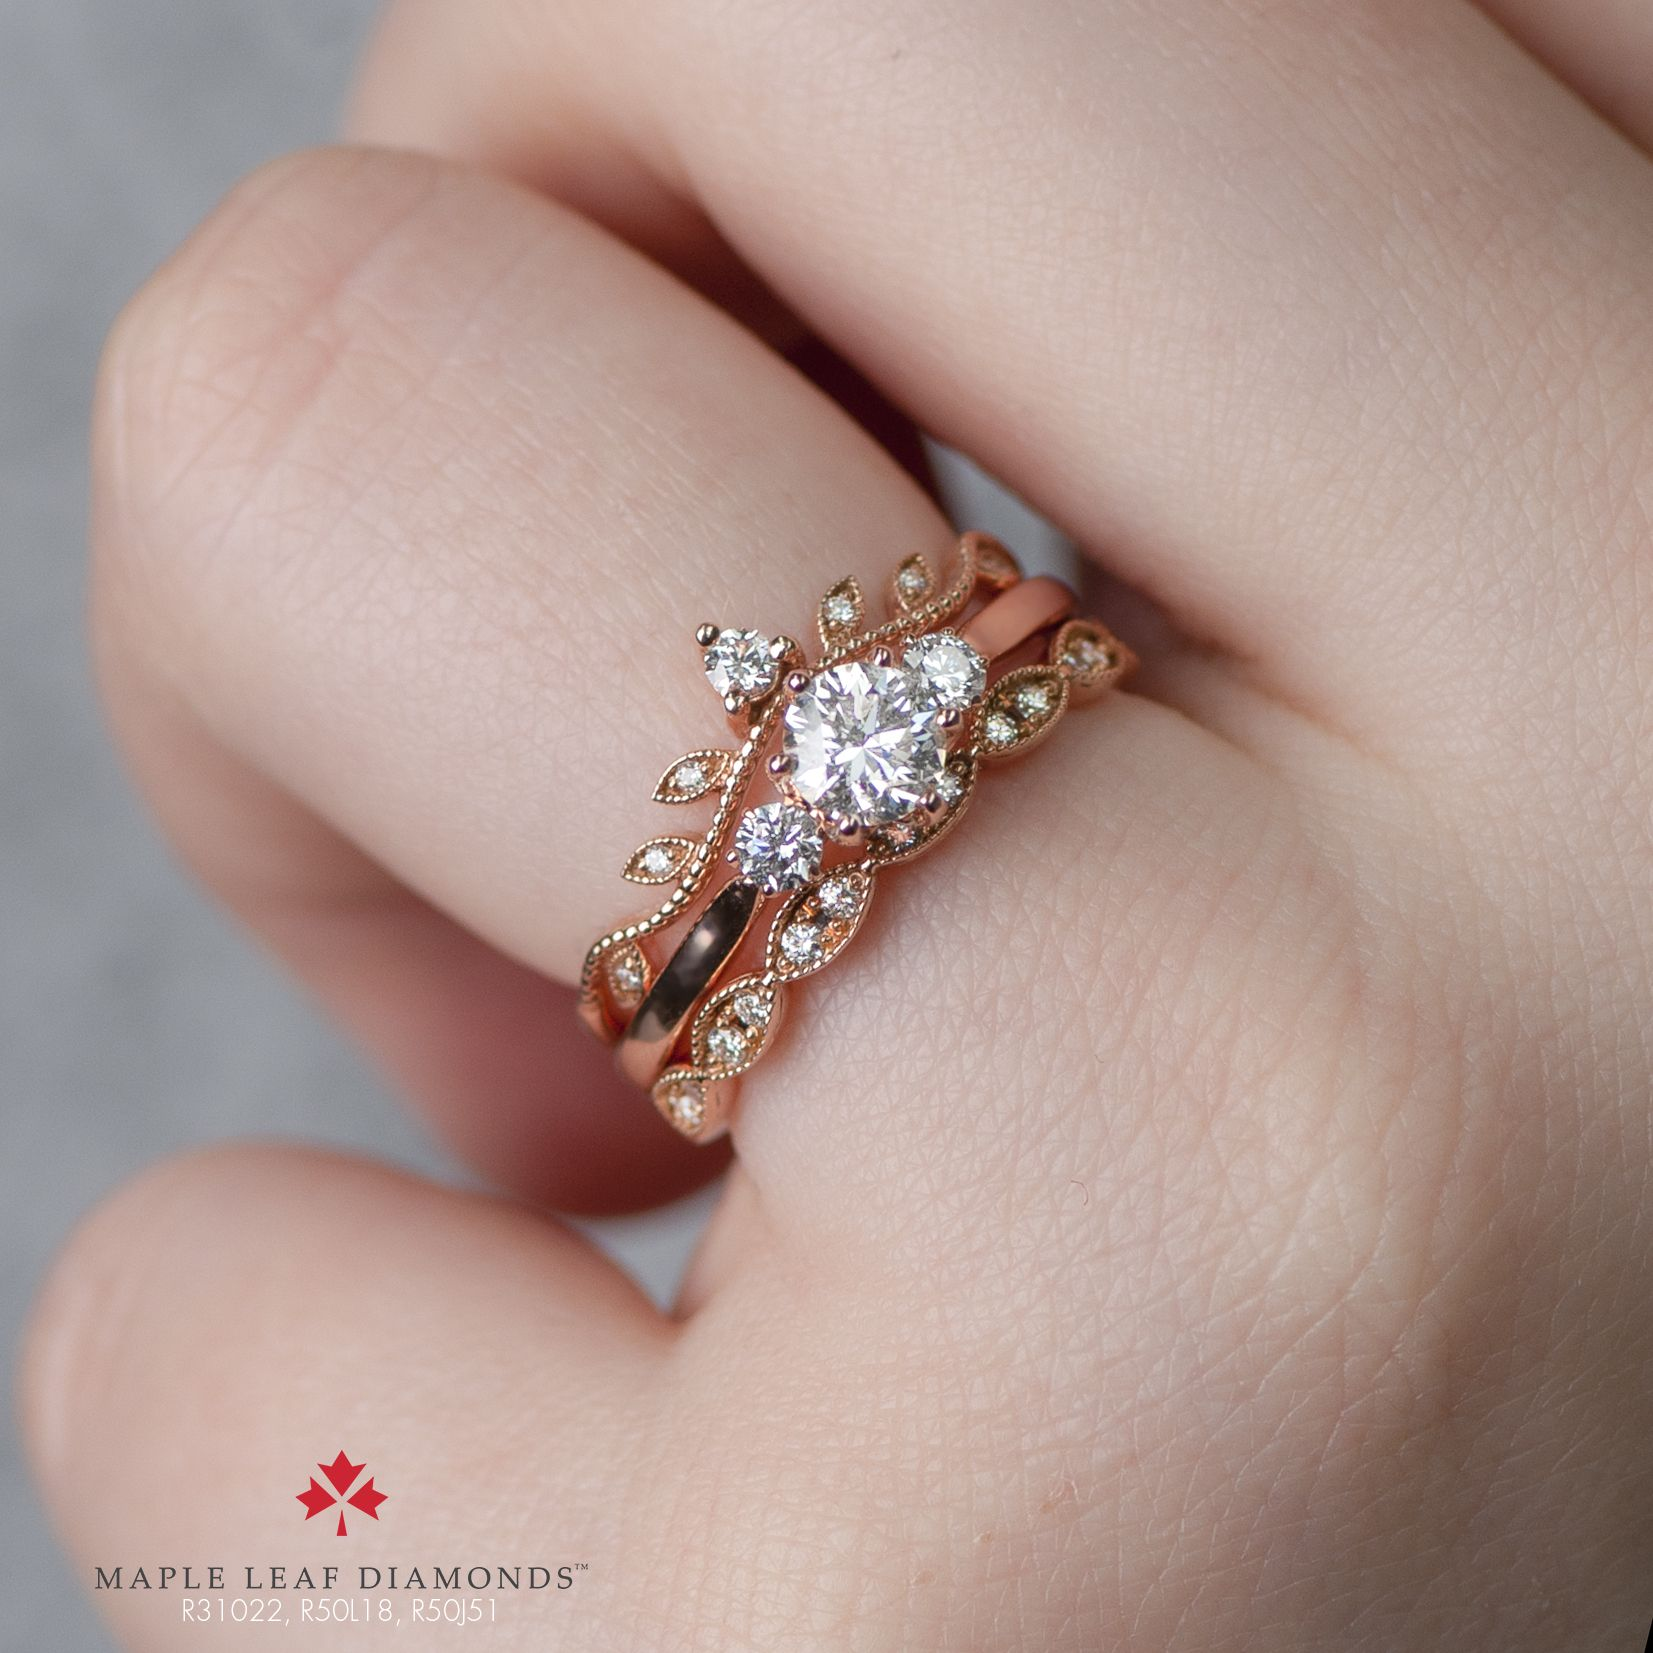 Diamond Wedding Bands Canada Provided Jewellery Stores Bendigo Wedding Ring Sets Diamond Wedding Bands Vintage Engagement Rings